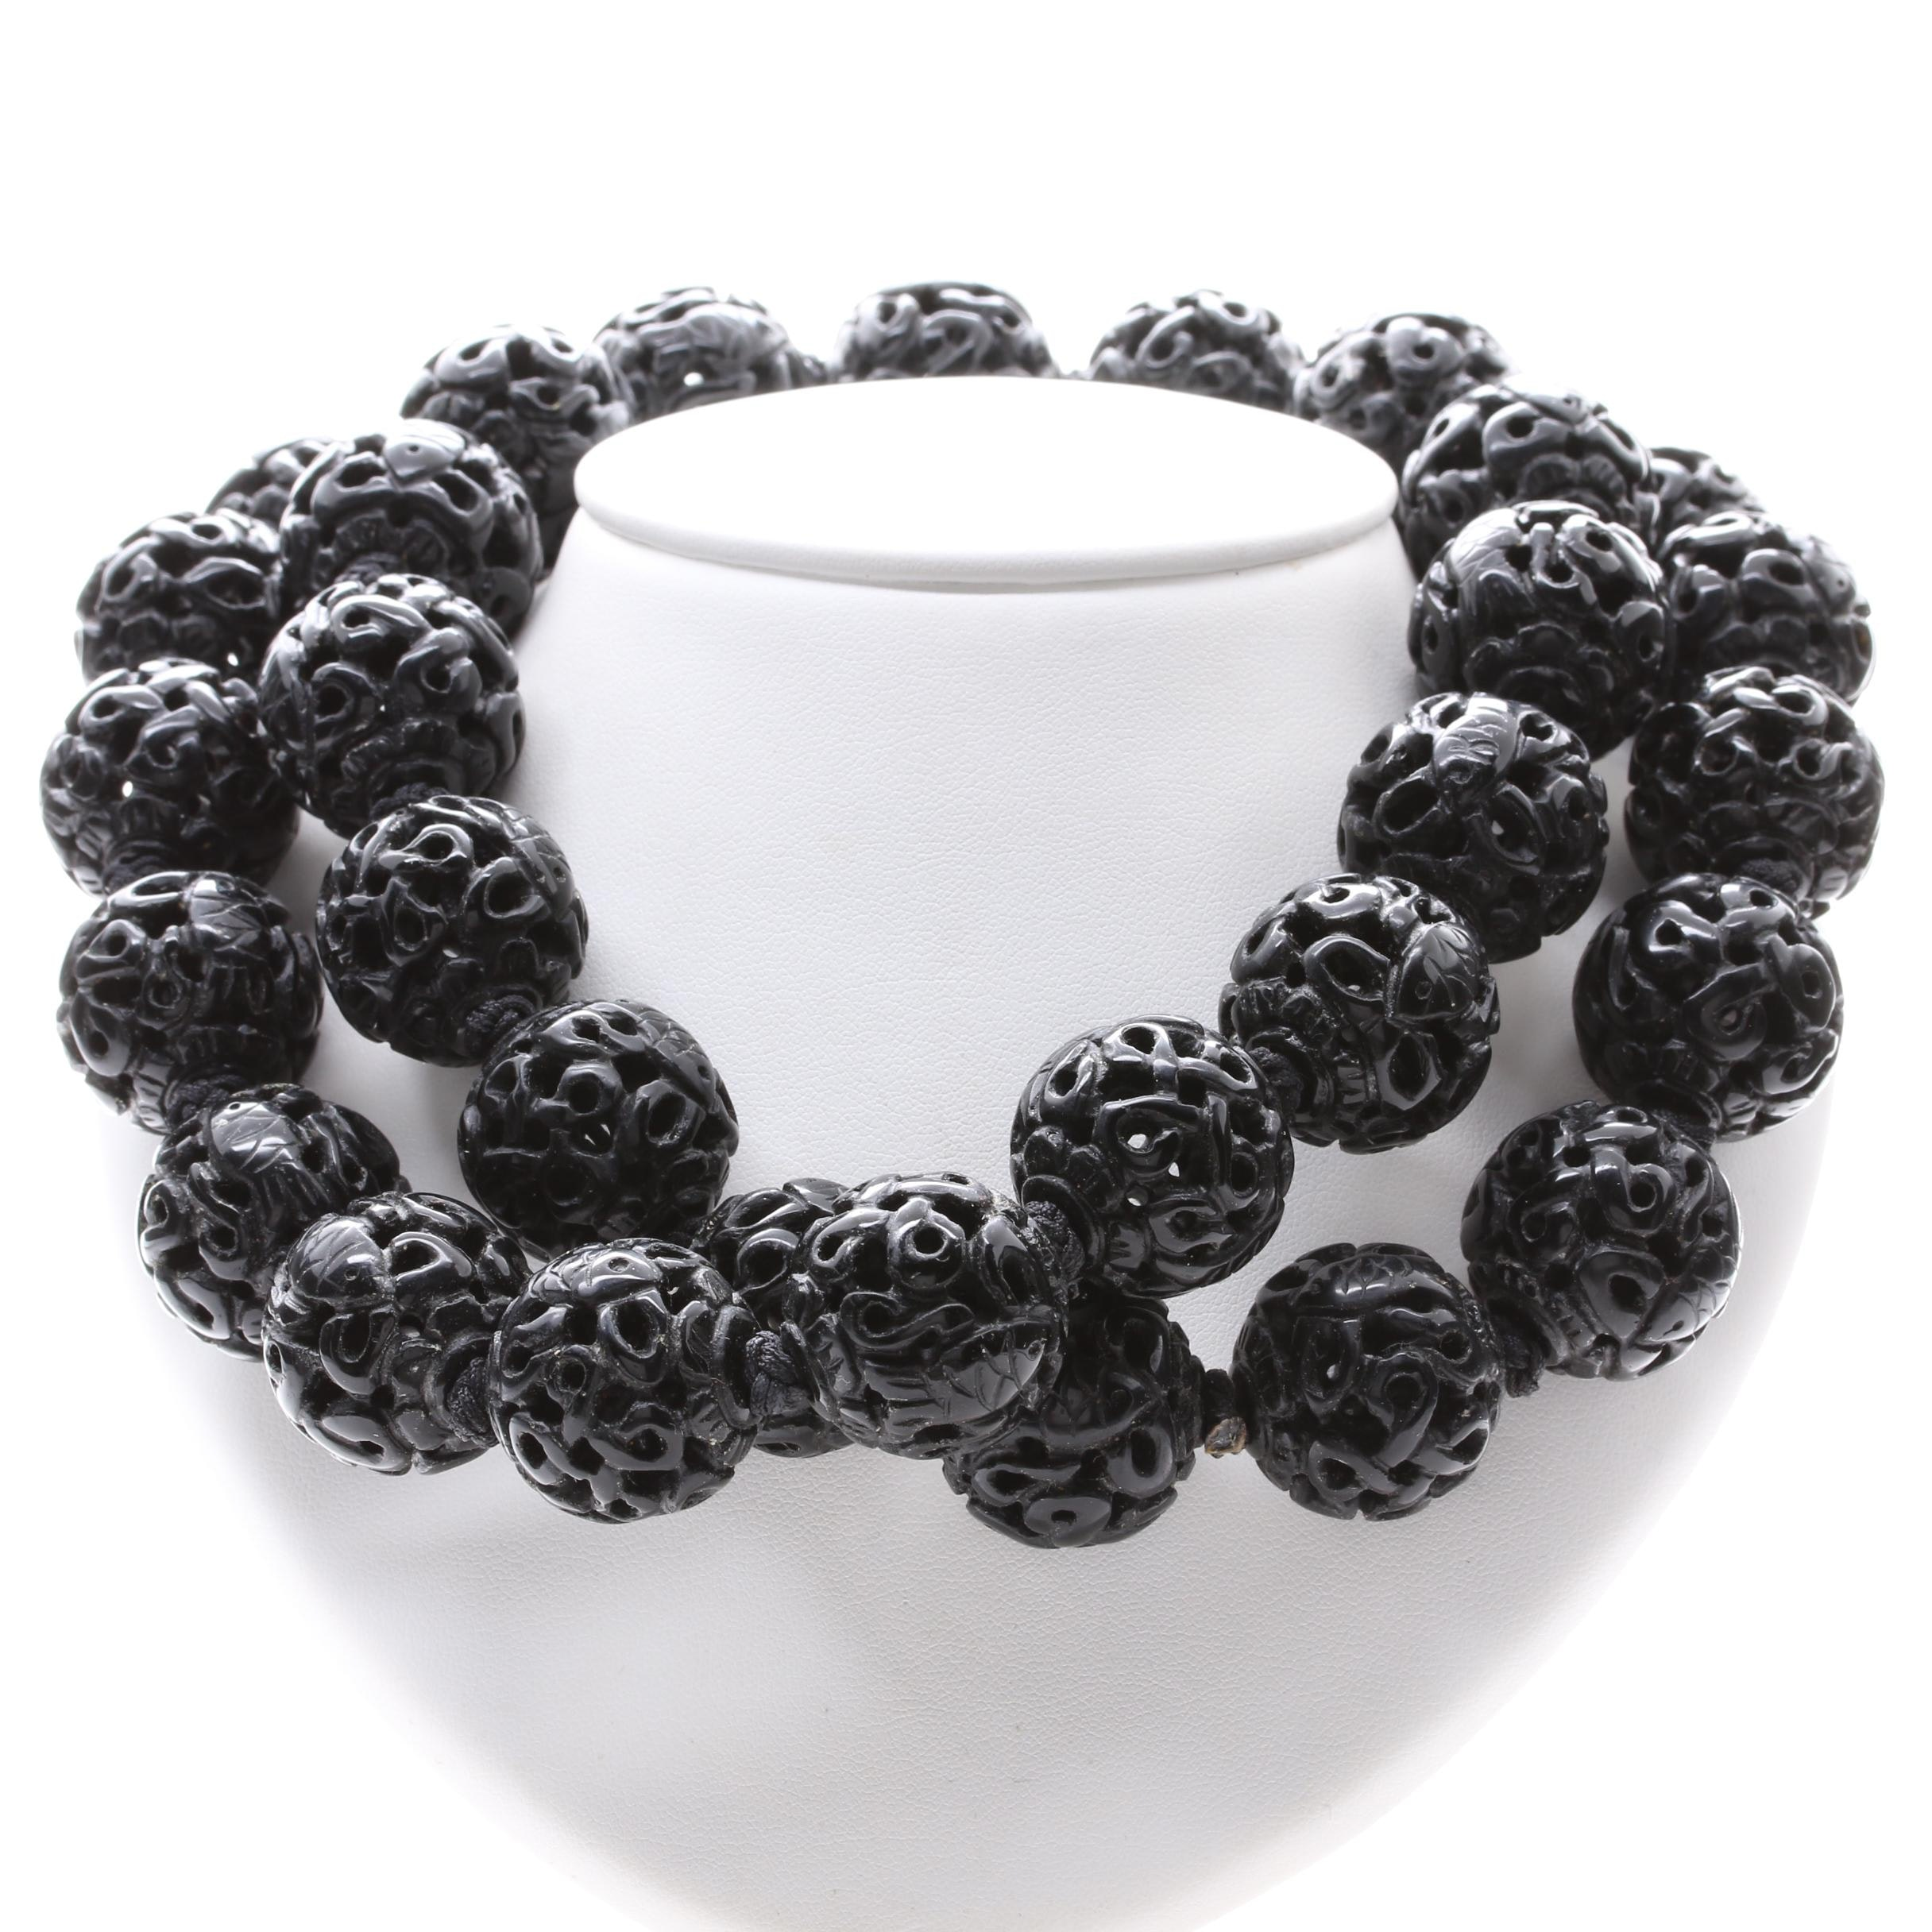 Carved Black Onyx Beaded Necklace